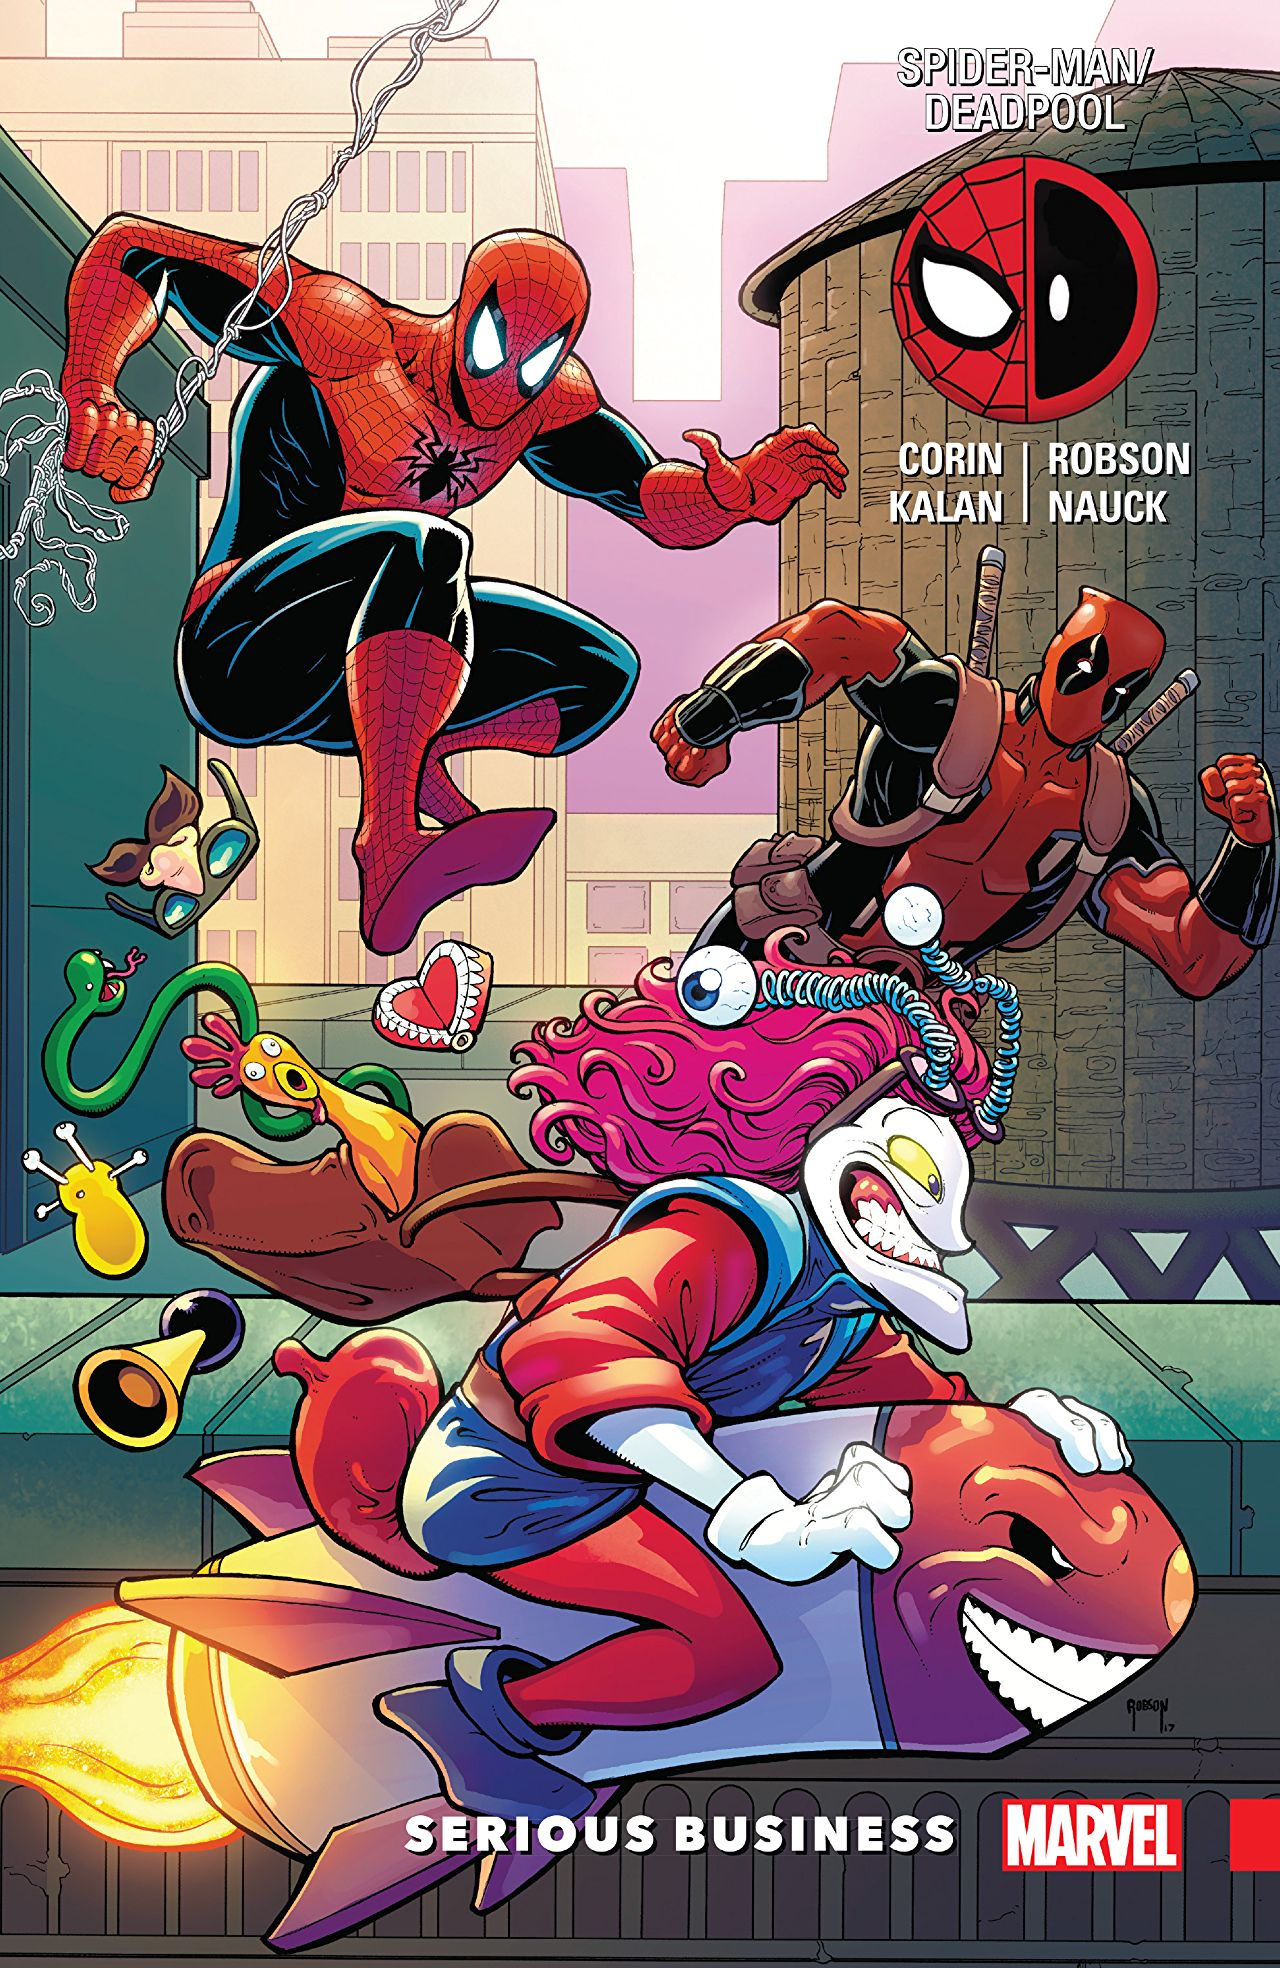 Spider-Man/Deadpool Vol 4: Serious Business review: funny, fast-paced, and light on the deep thinking